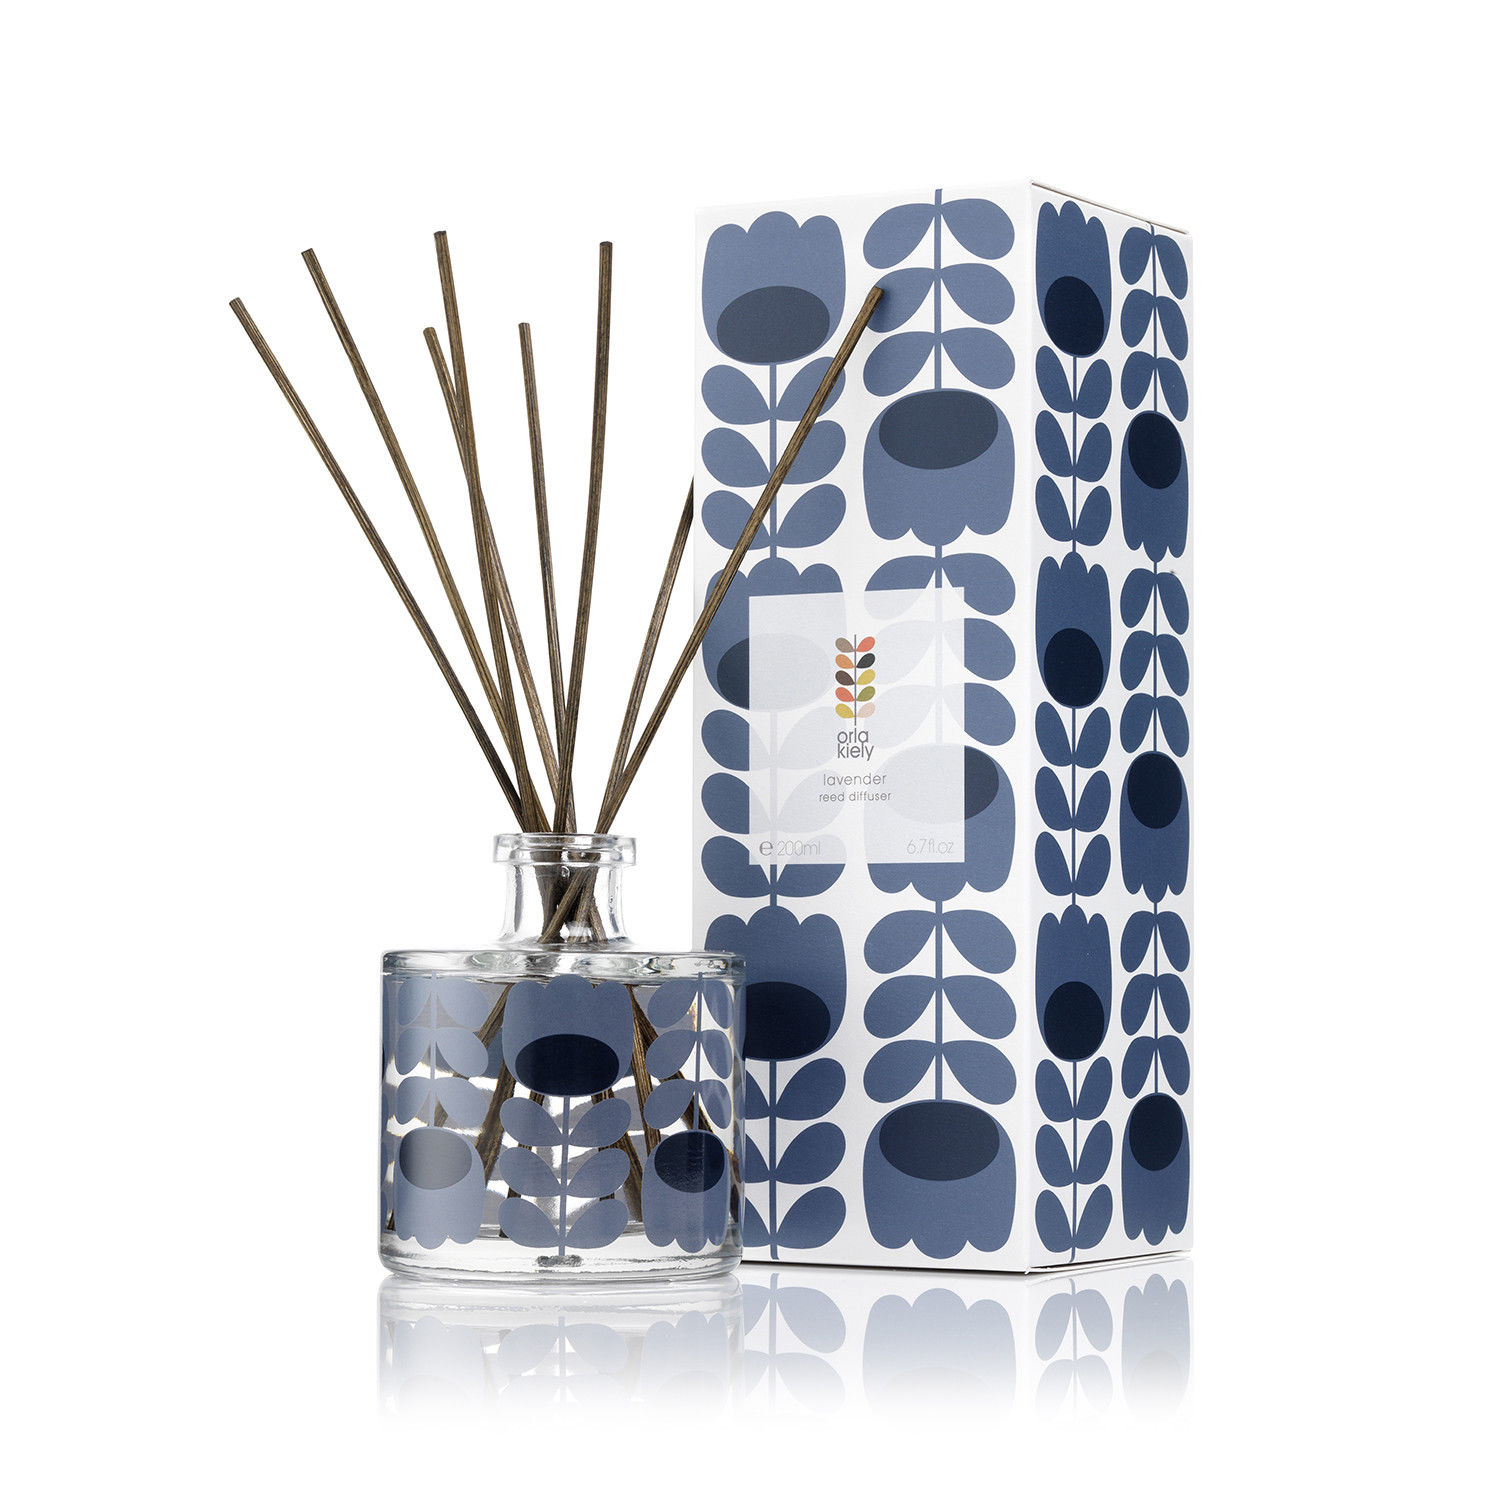 Orla Kiely – Lavender Scented Reed Diffuser in Presentation Gift Box